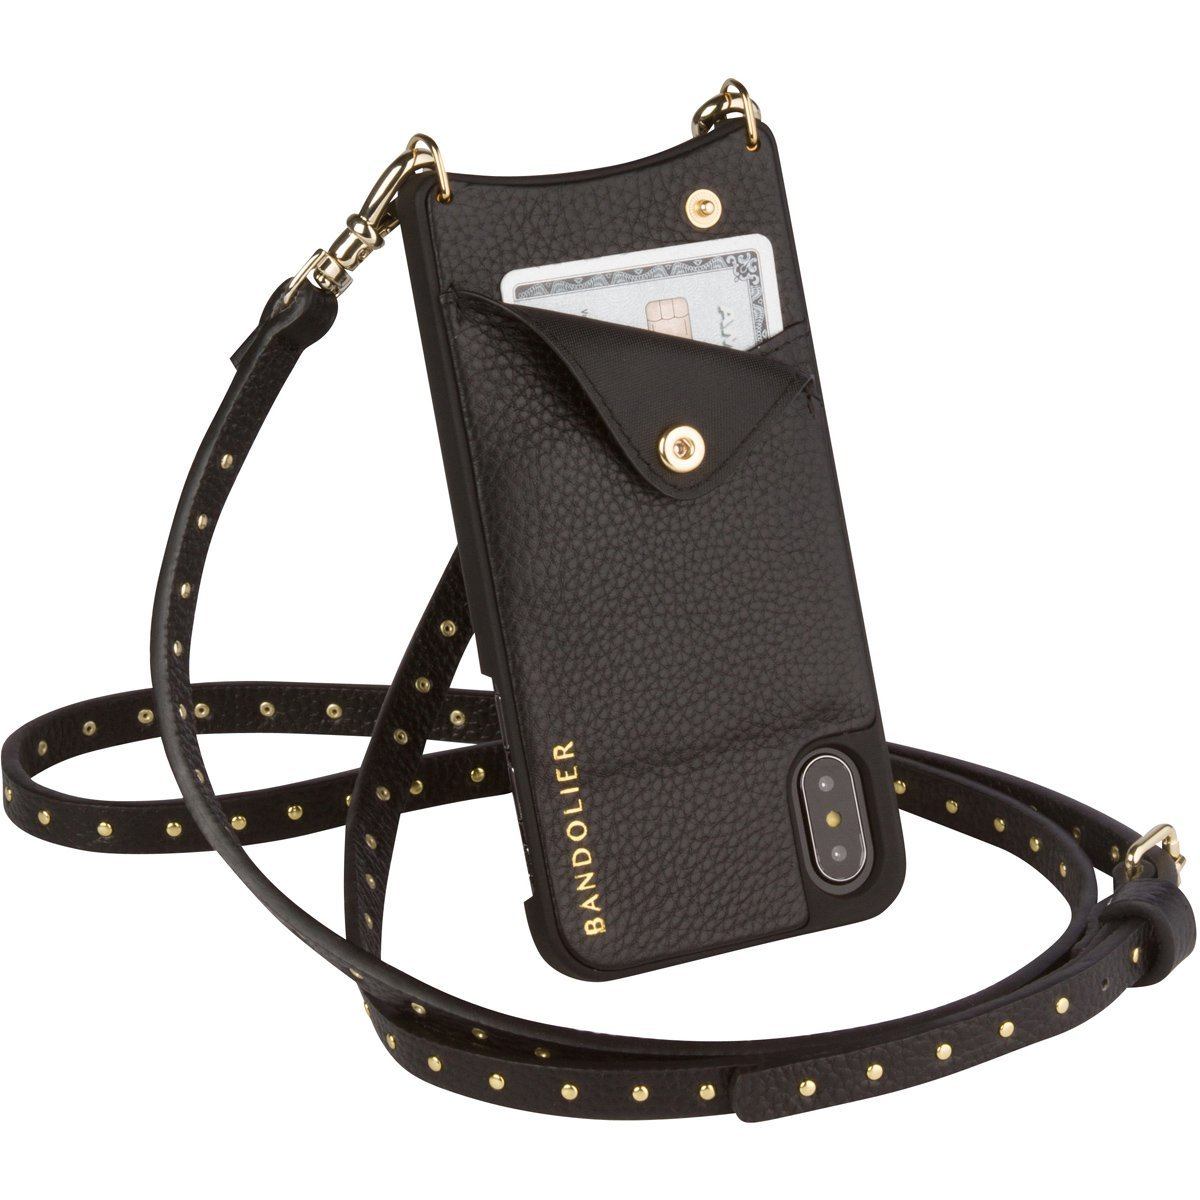 Bandolier [Nicole] Crossbody Phone Case and Wallet - Compatible with iPhone X & XS - Black Leather with Gold Accent